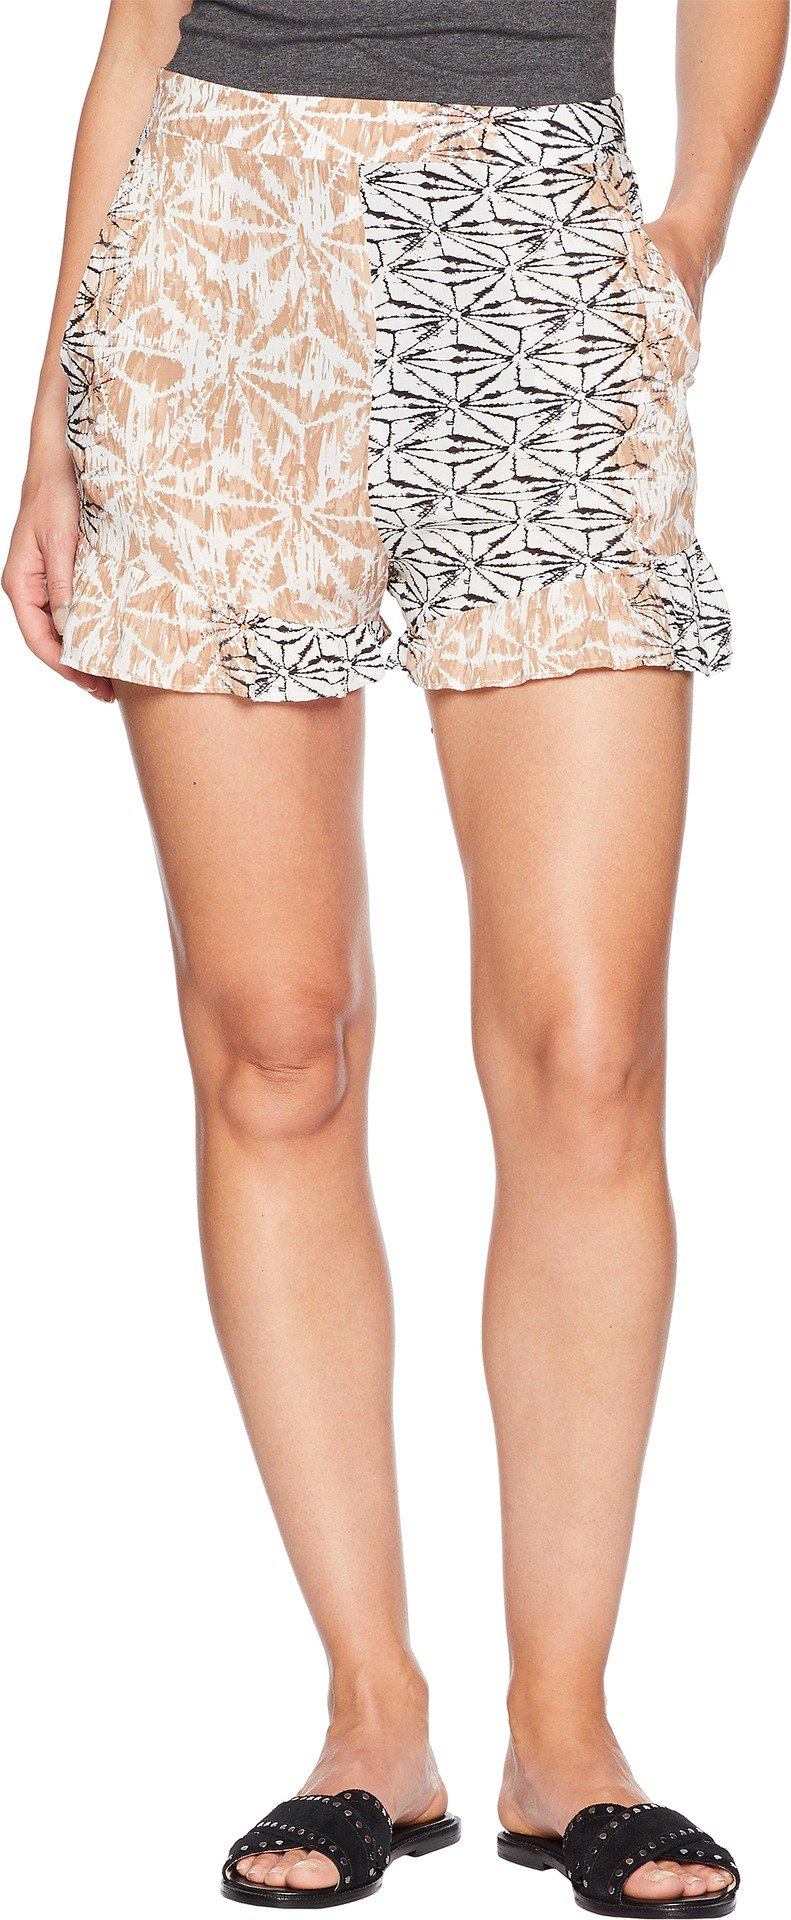 BCBGMAXAZRIA Women's Ruffle Shorts Tan Combo Small